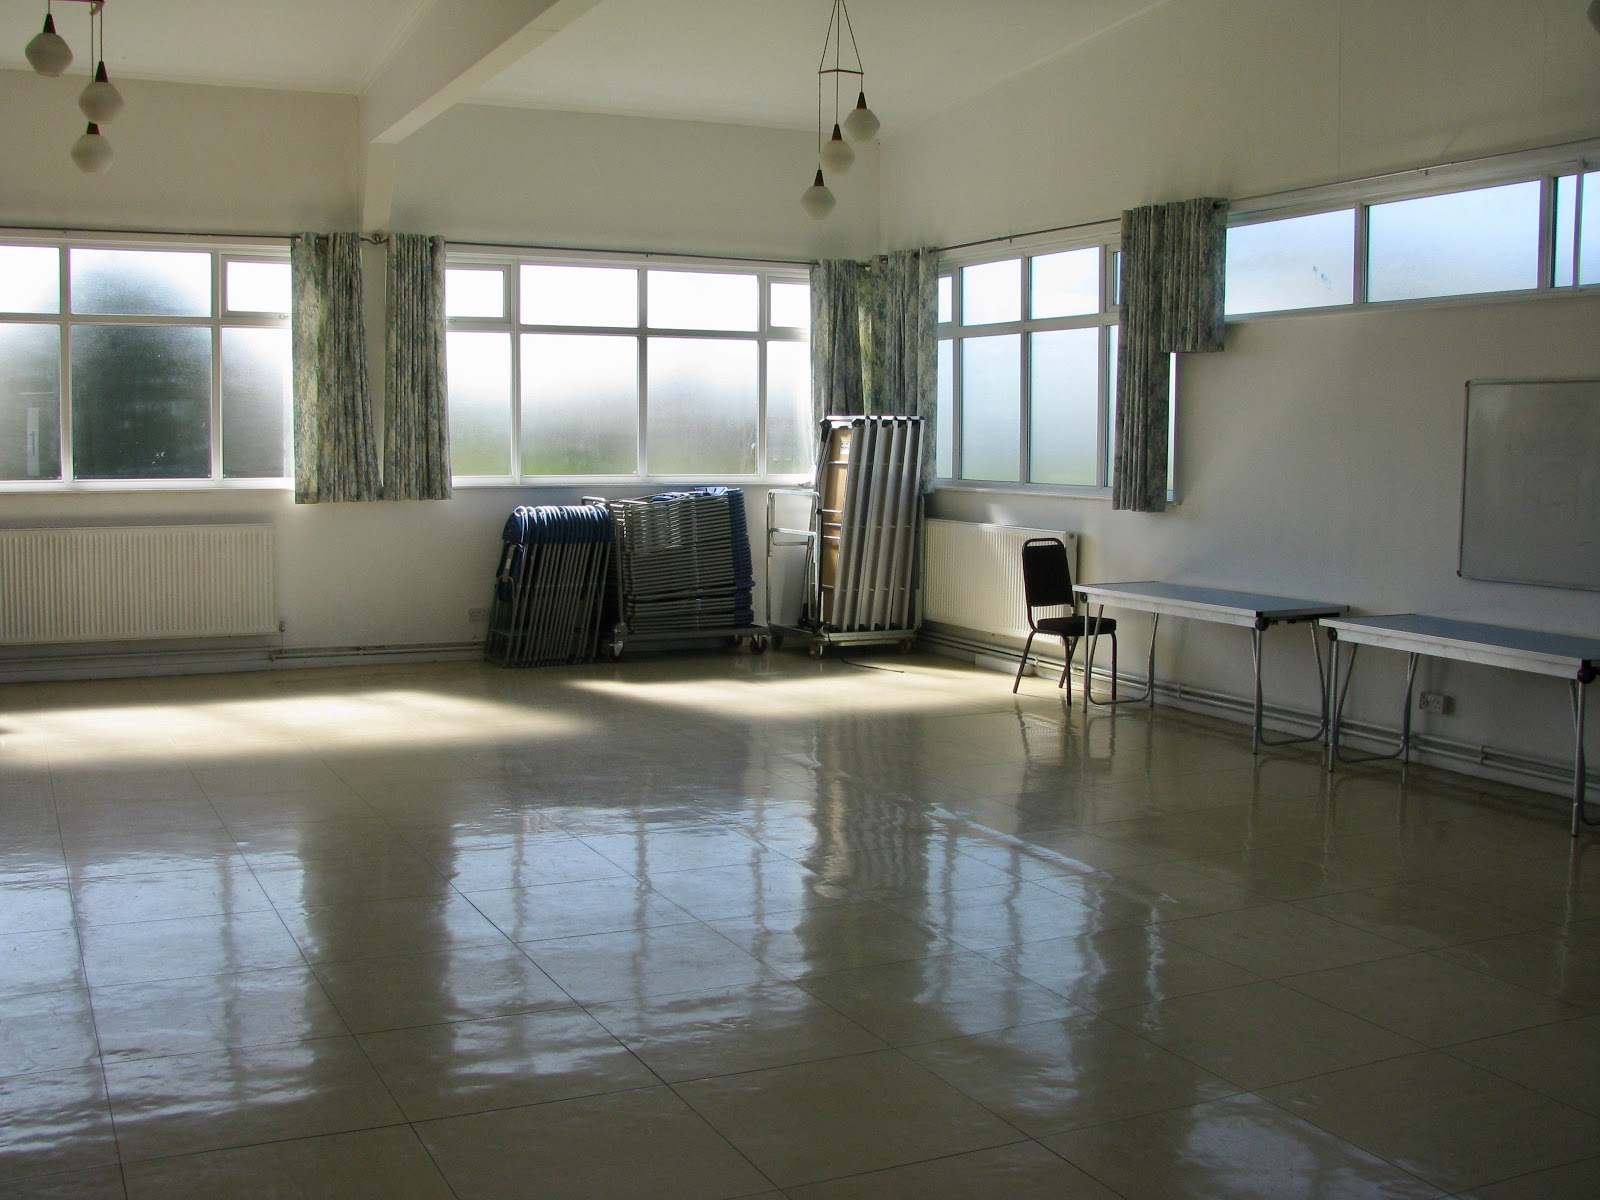 Large space, linoleum floor, Windows letting in sun light, folding chairs stacked. Radiators fitted to walls.